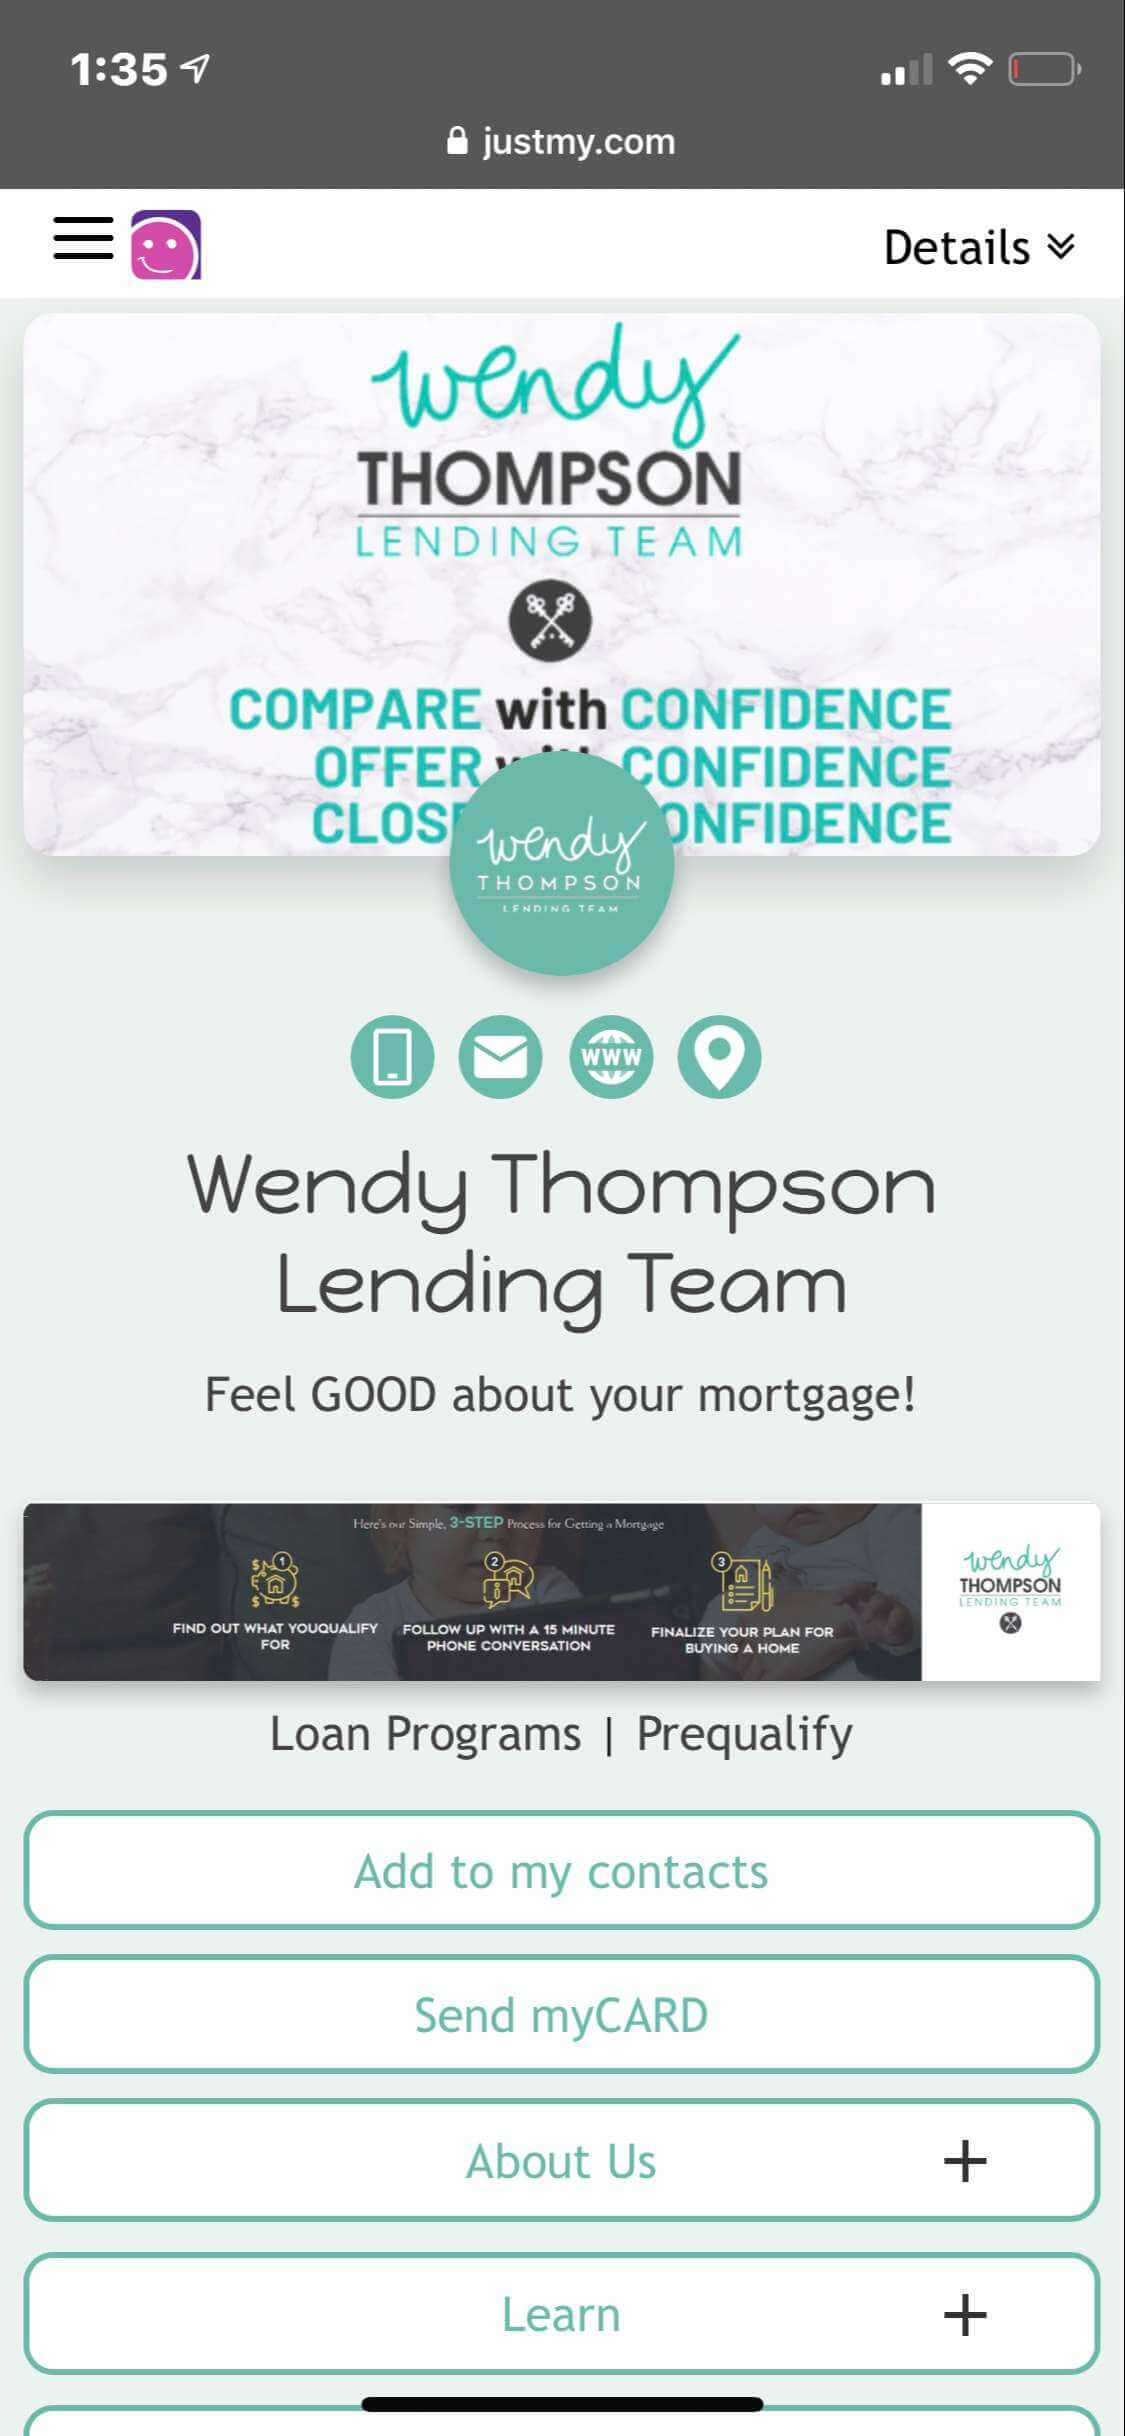 myCARD  |  Wendy Thompson Lending Team